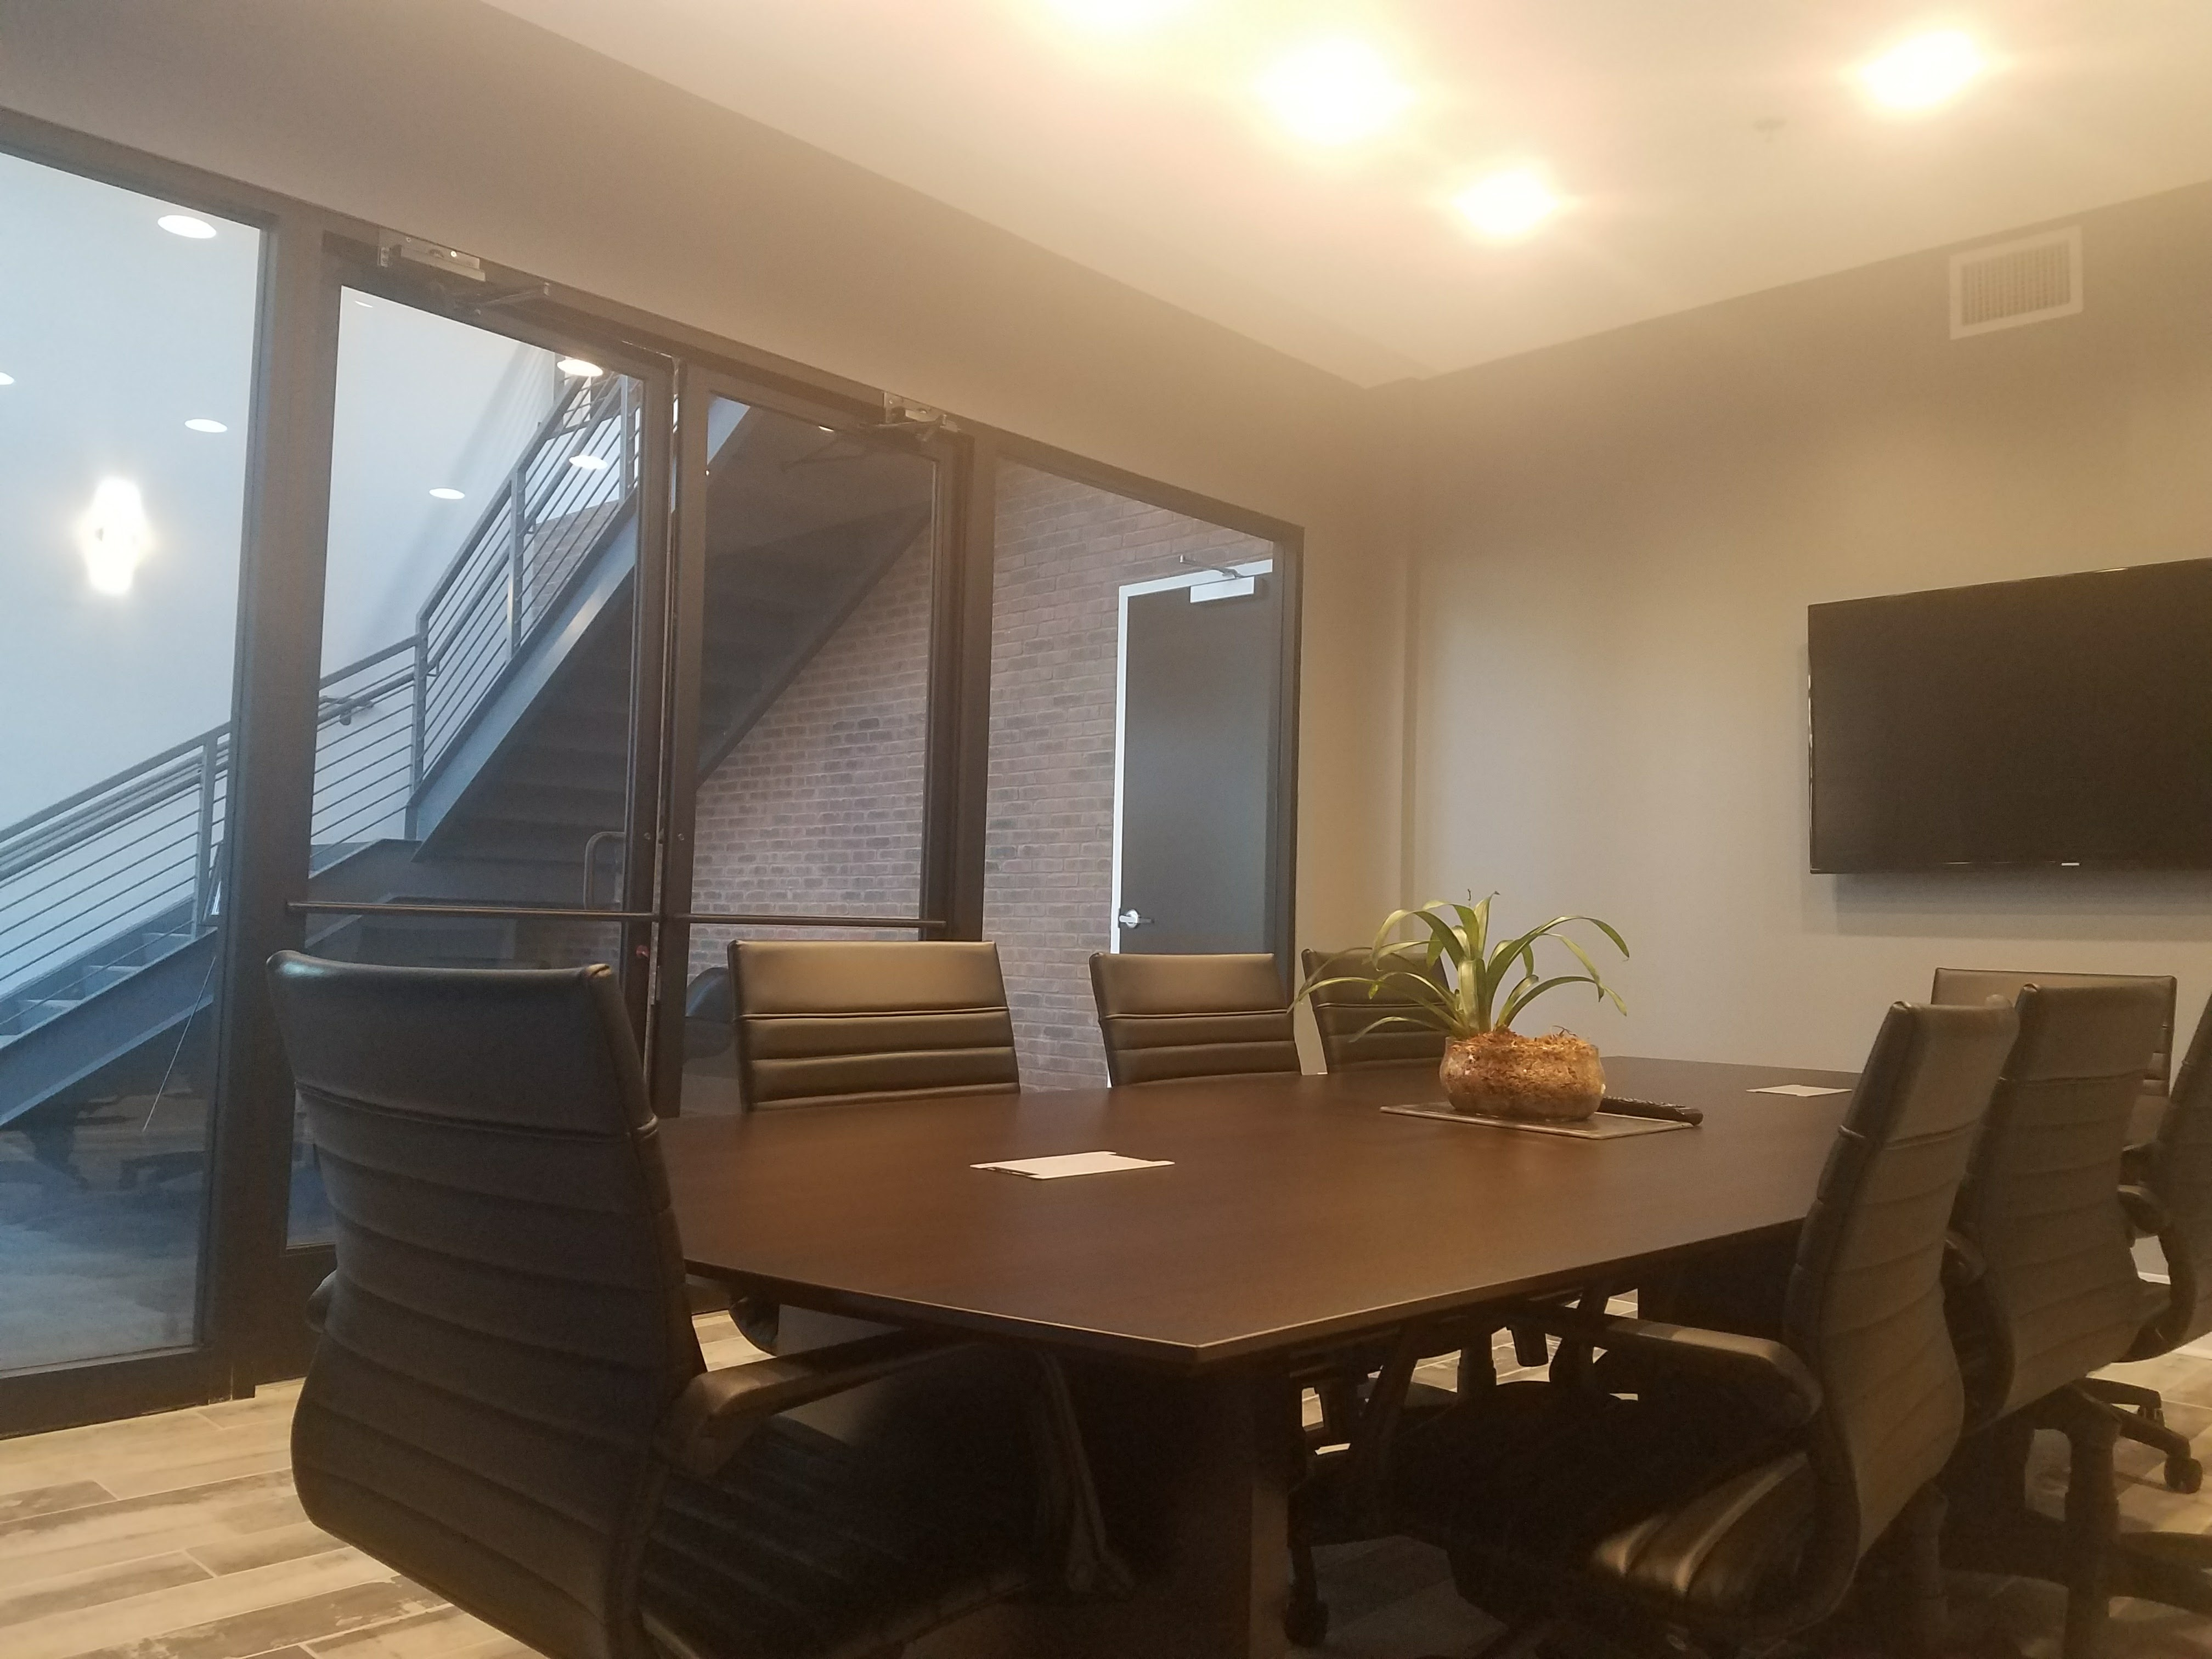 CFI Conference Room